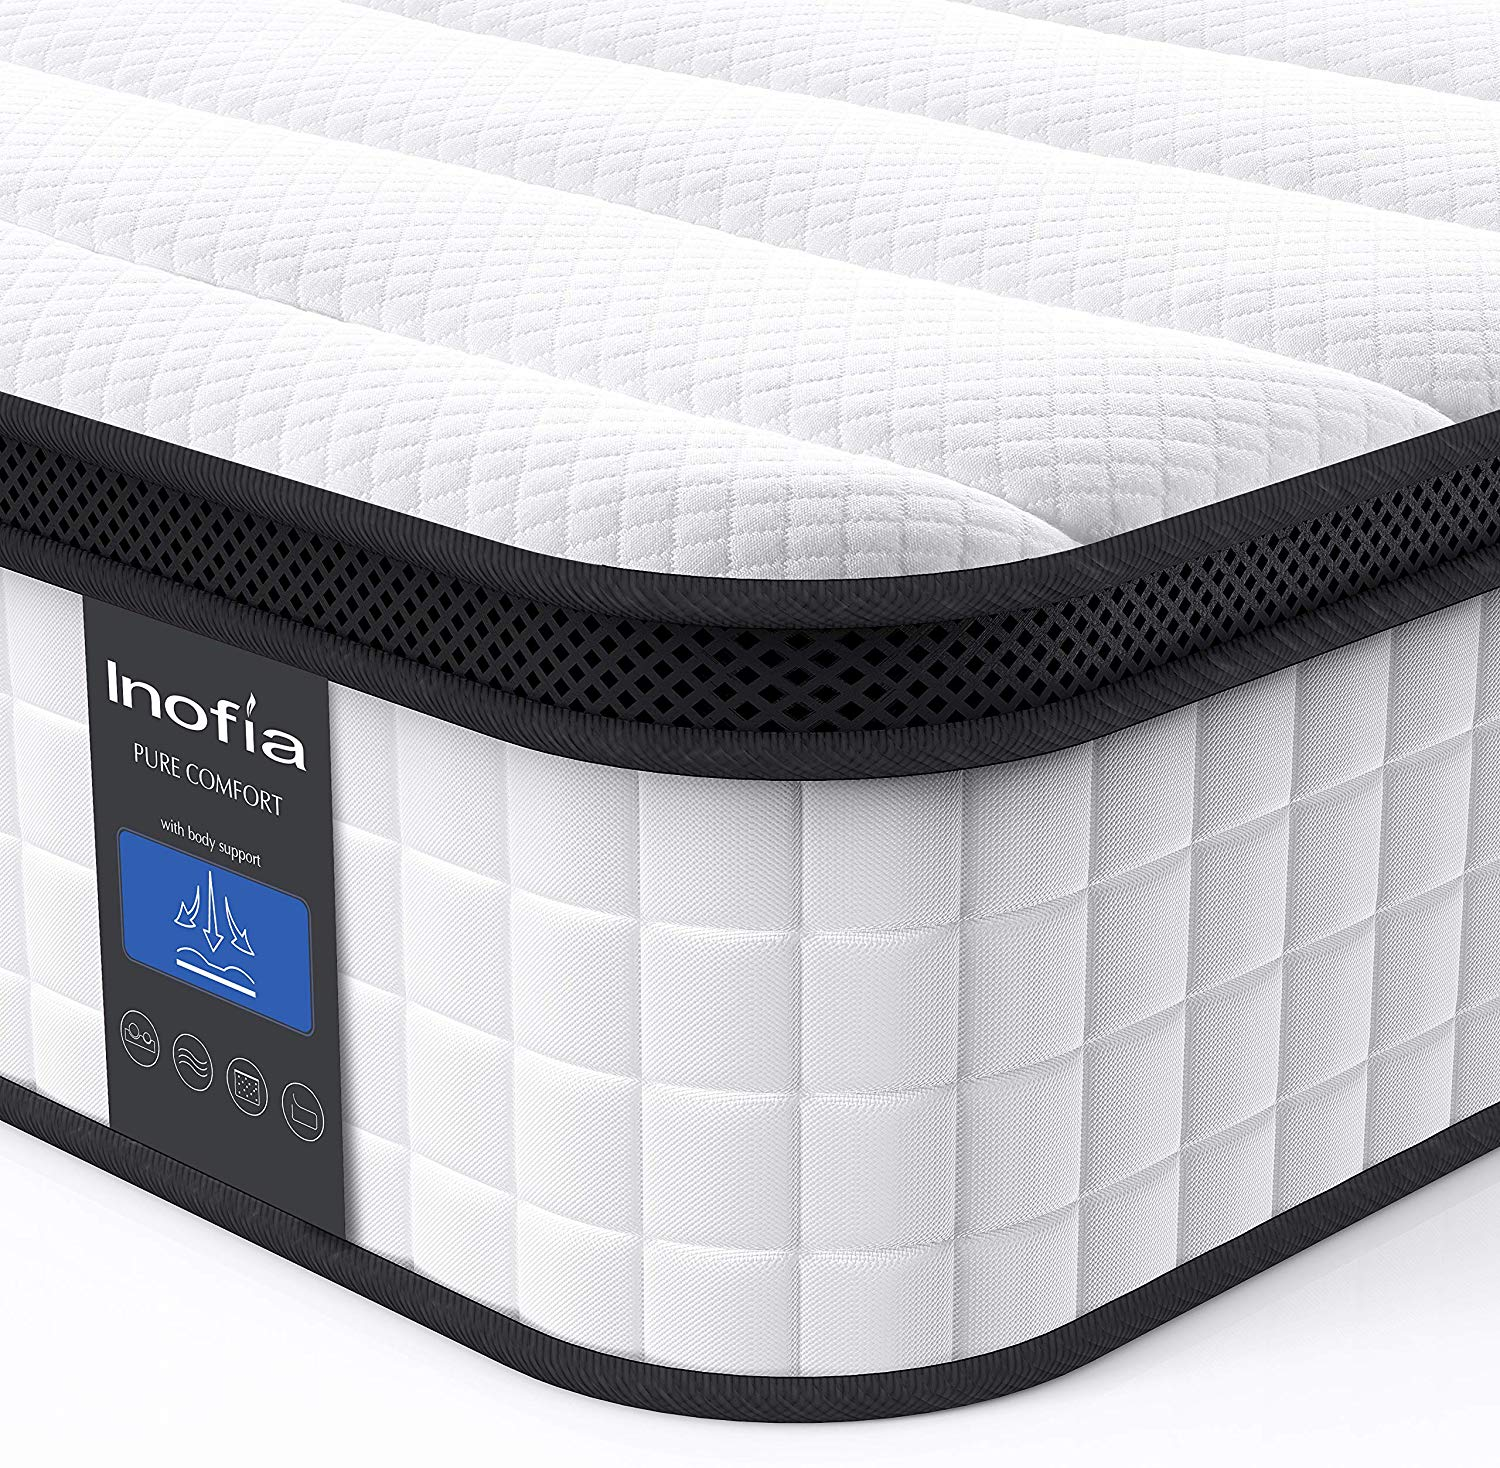 Inofia Double Memory Foam Sprung Mattress 10.6 Inch,4FT6Spring Mattress (135x190x27cm)